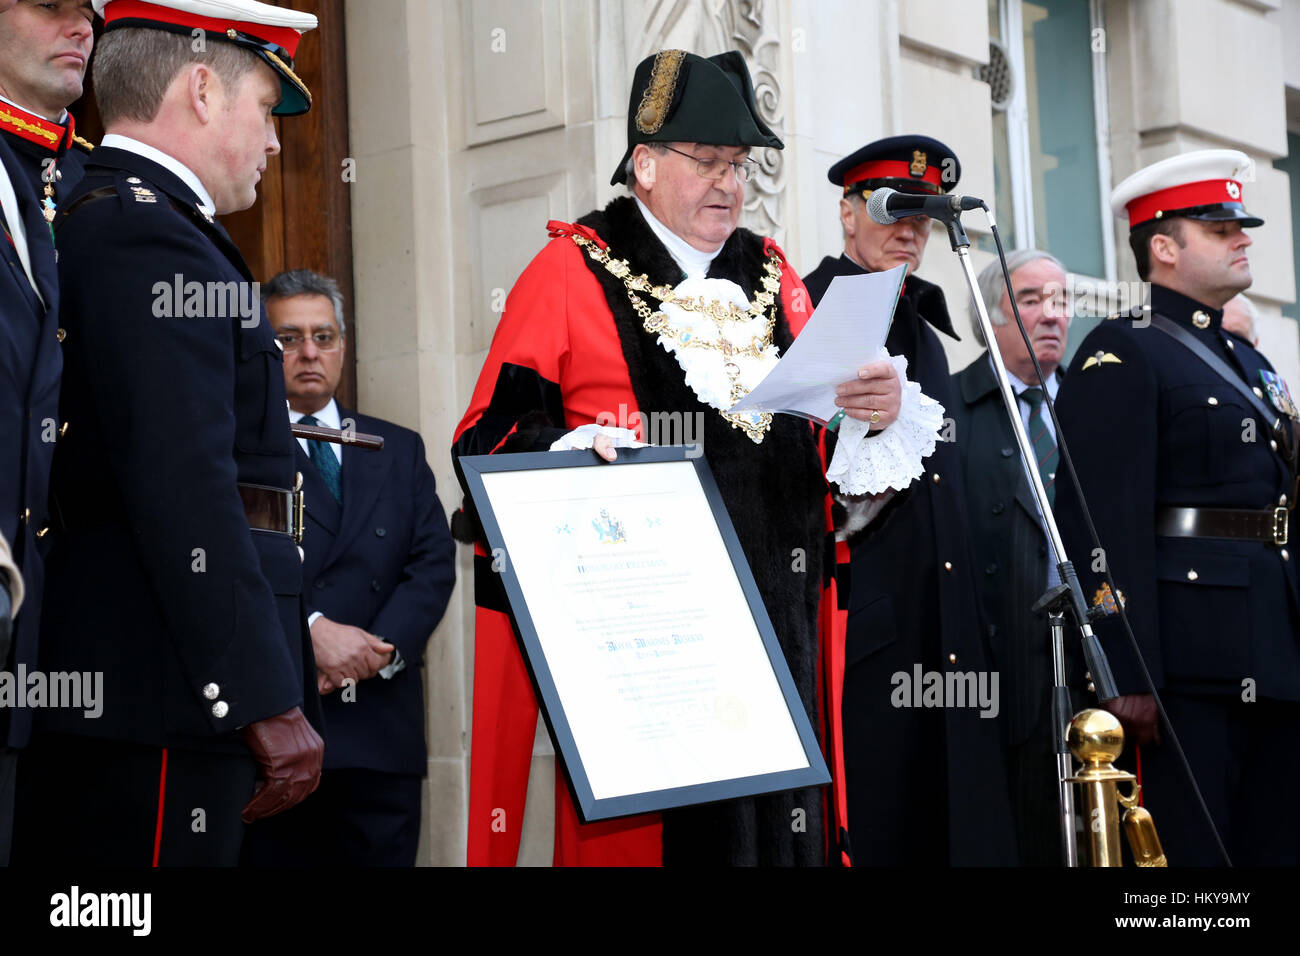 Mayor of wandsworth  cllr richard field reads the citation before he hands the certificate of the freedom of the - Stock Image